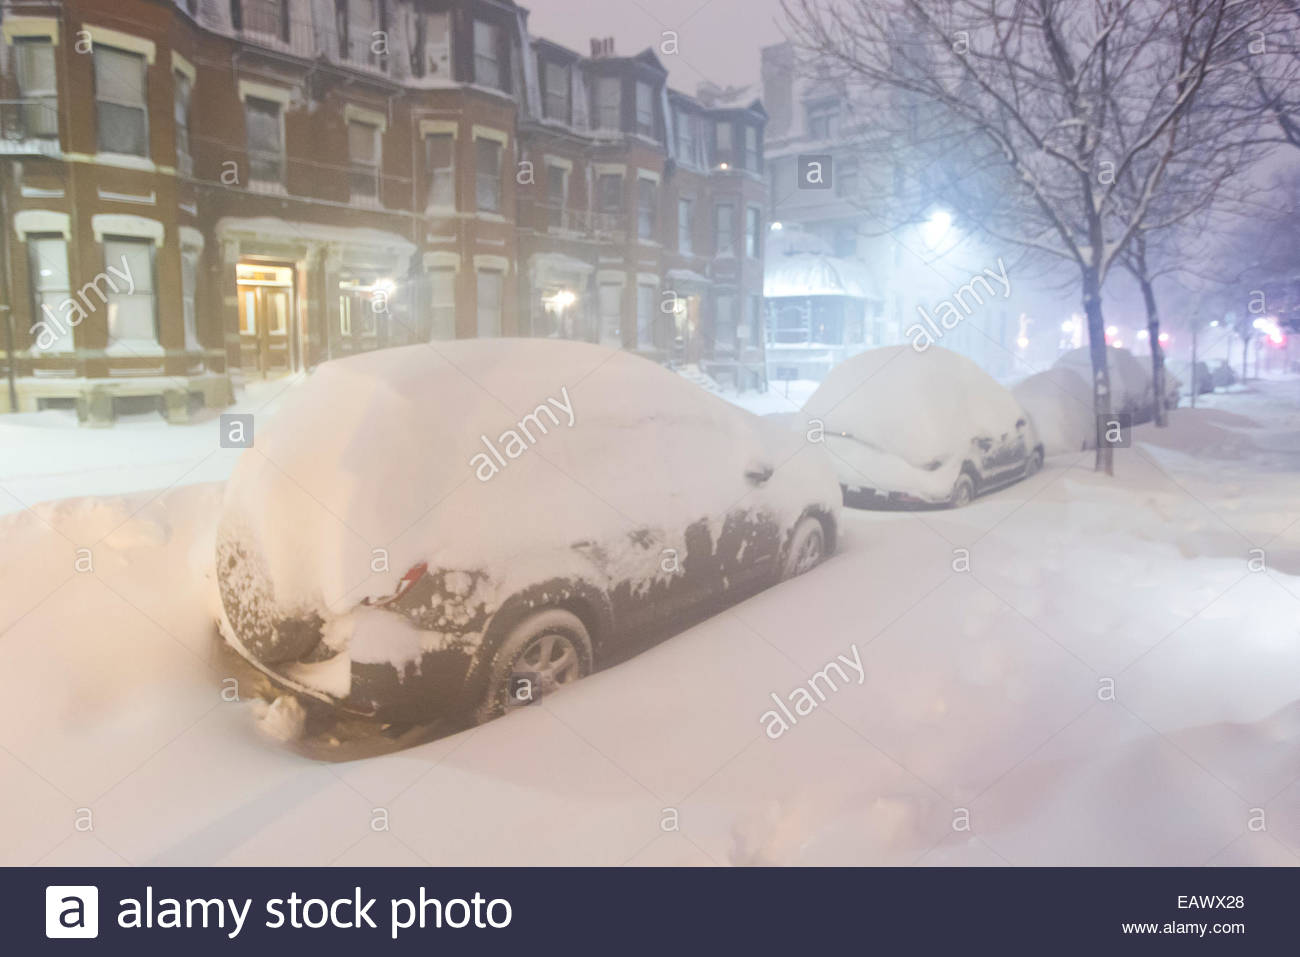 Mounds of snow bury parked vehicles during the historic blizzard that hit Boston in 2013. - Stock Image